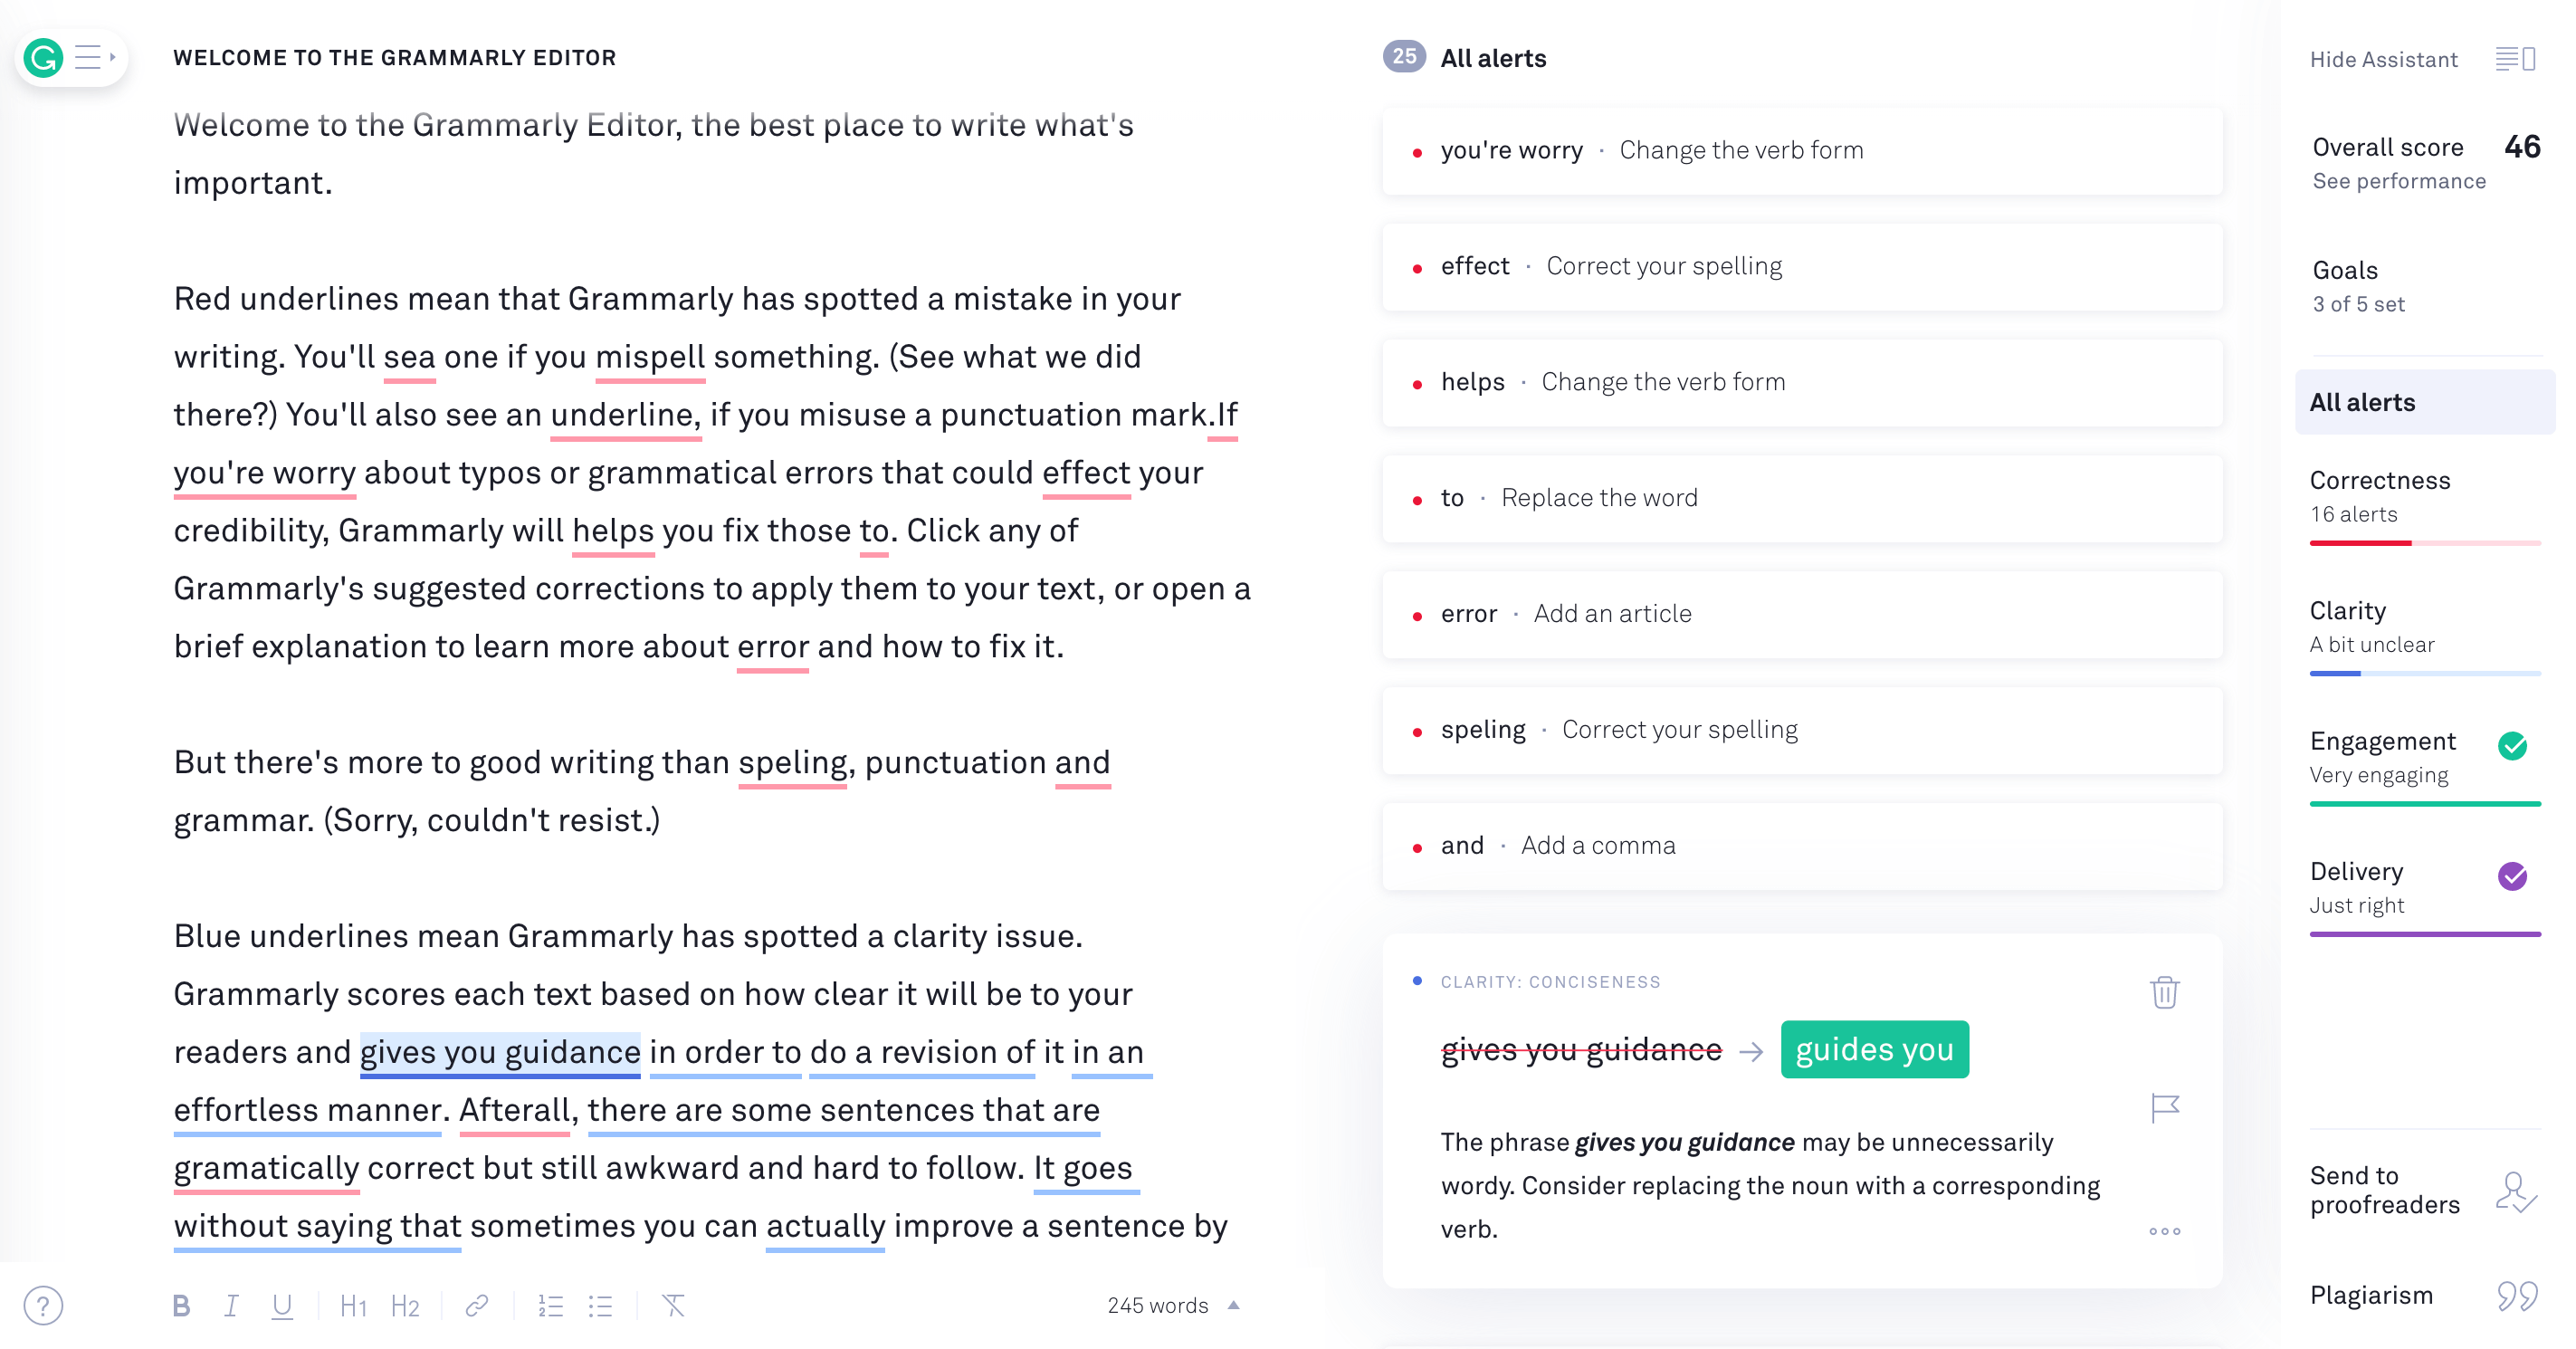 About Grammarly Editor